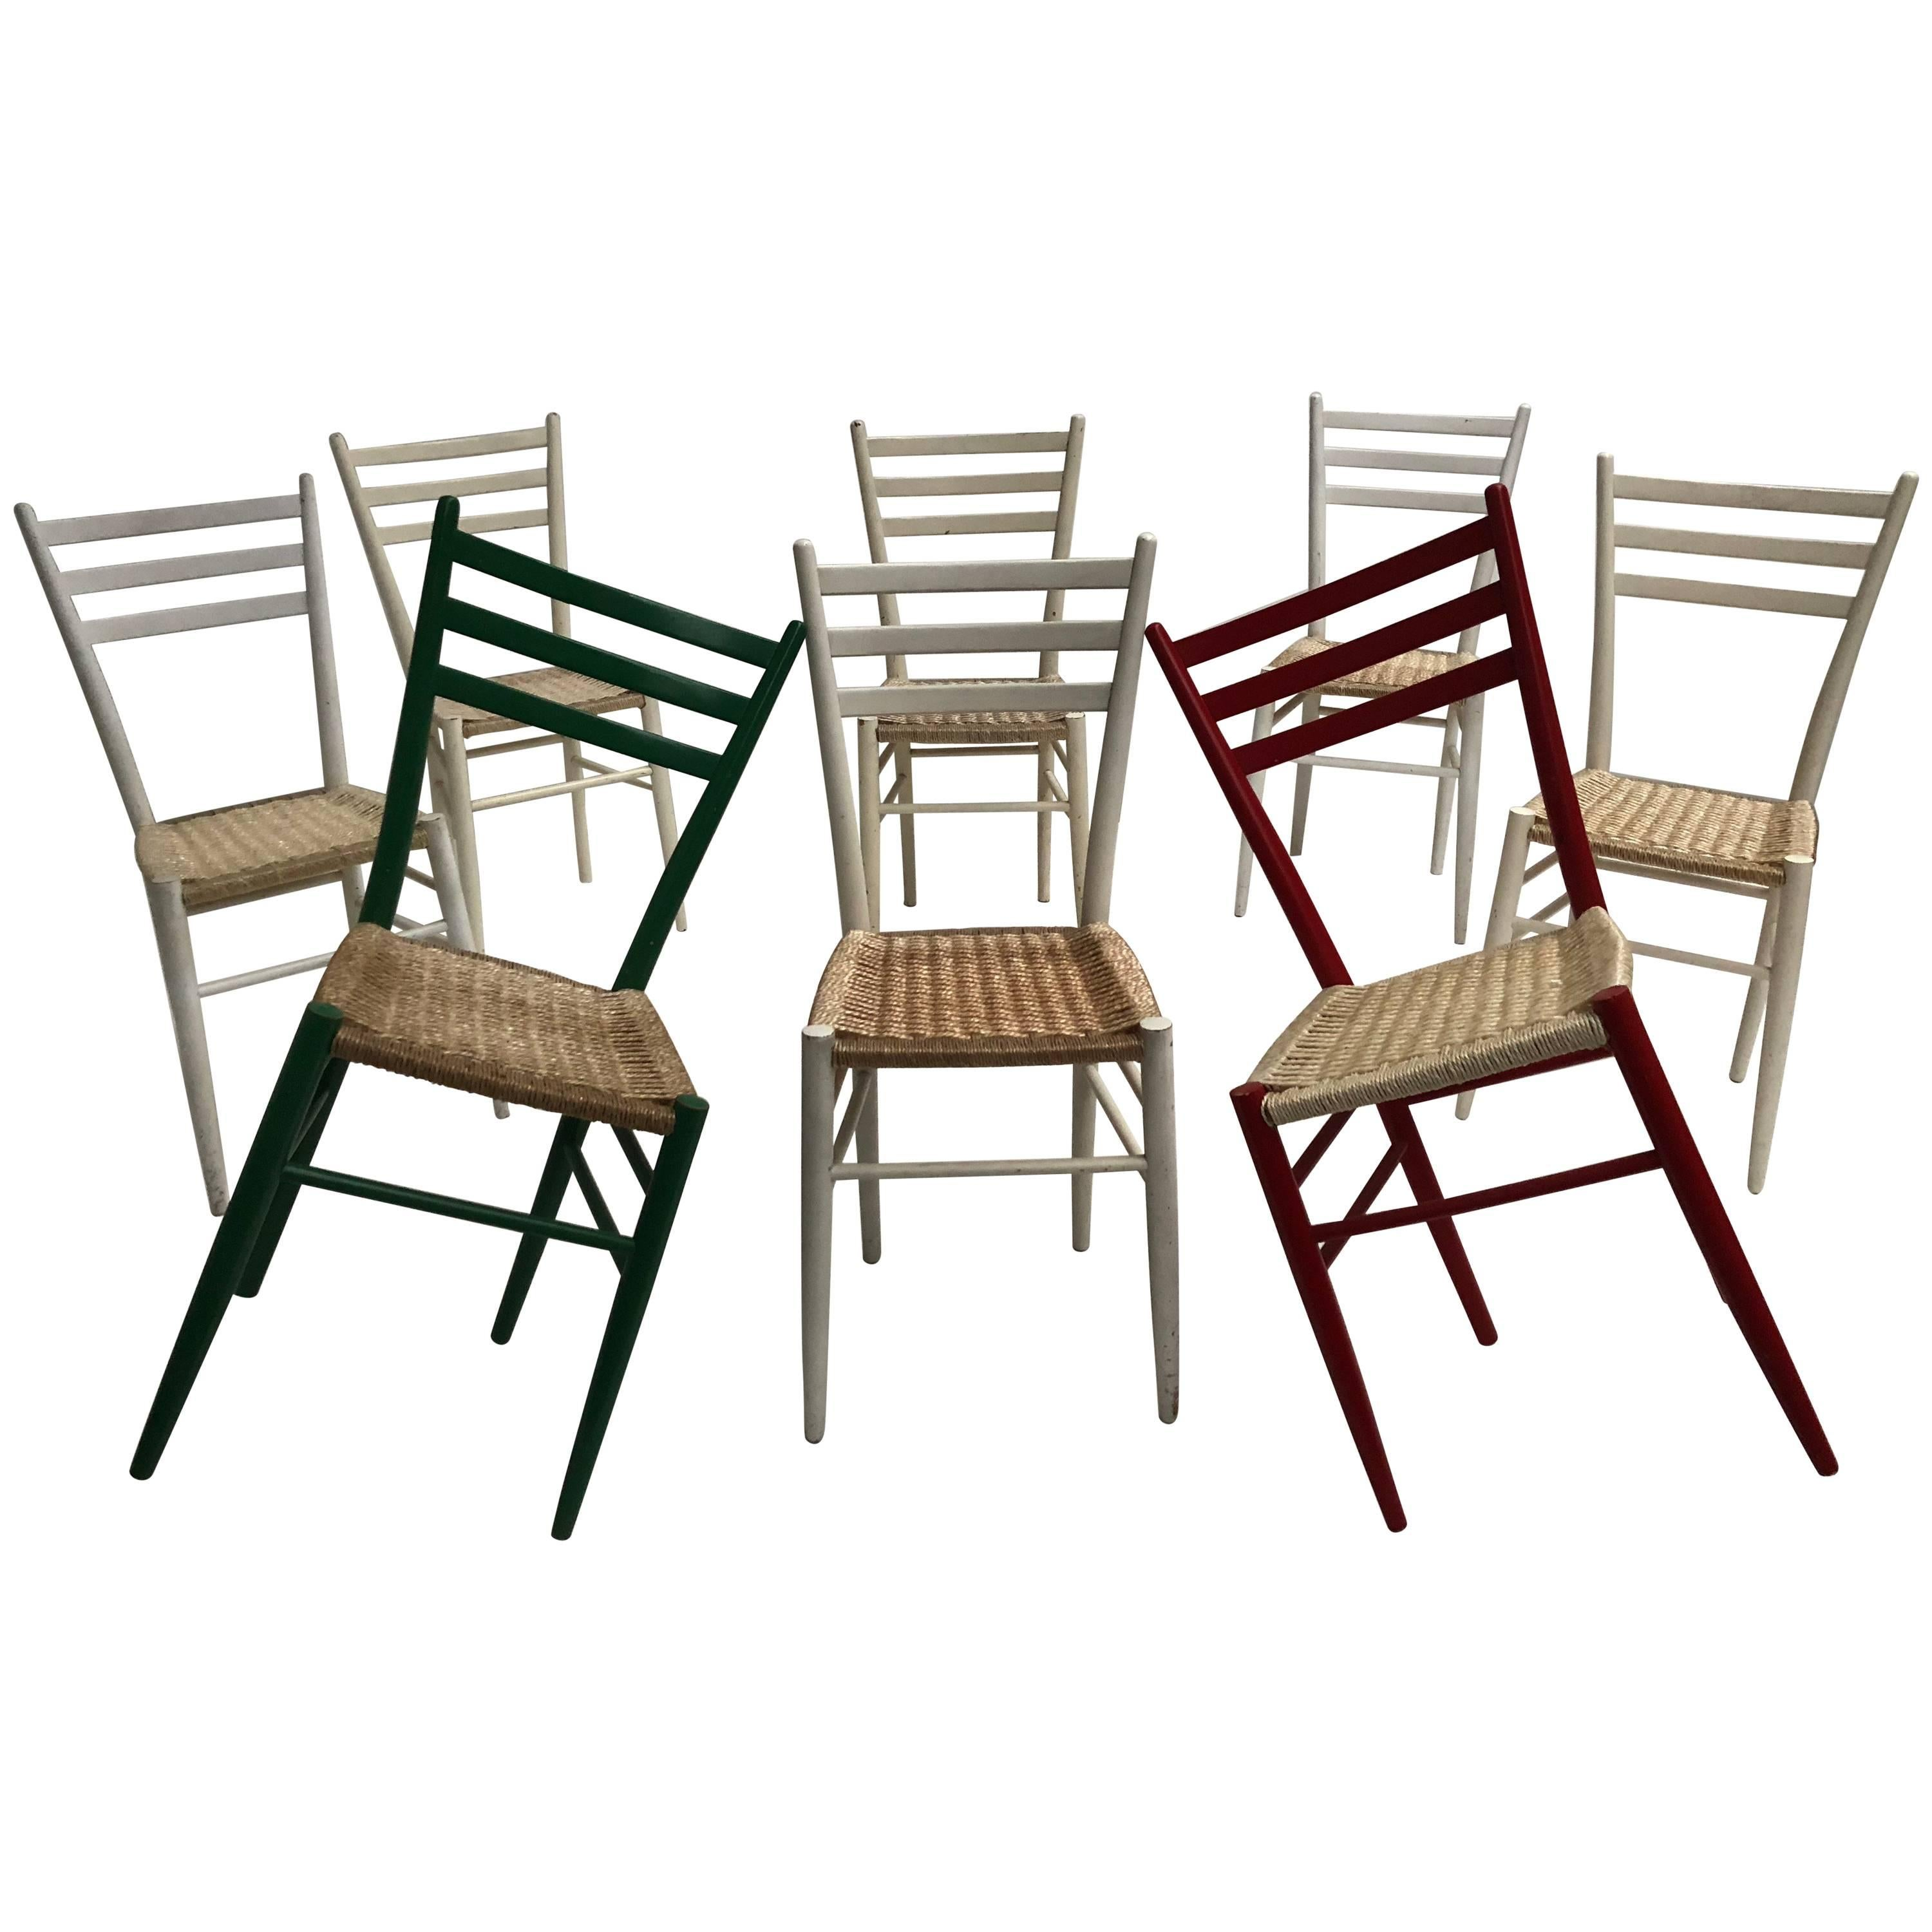 Colorful set of eight vintage gio ponti style chiavari chairs made in italy for sale at 1stdibs